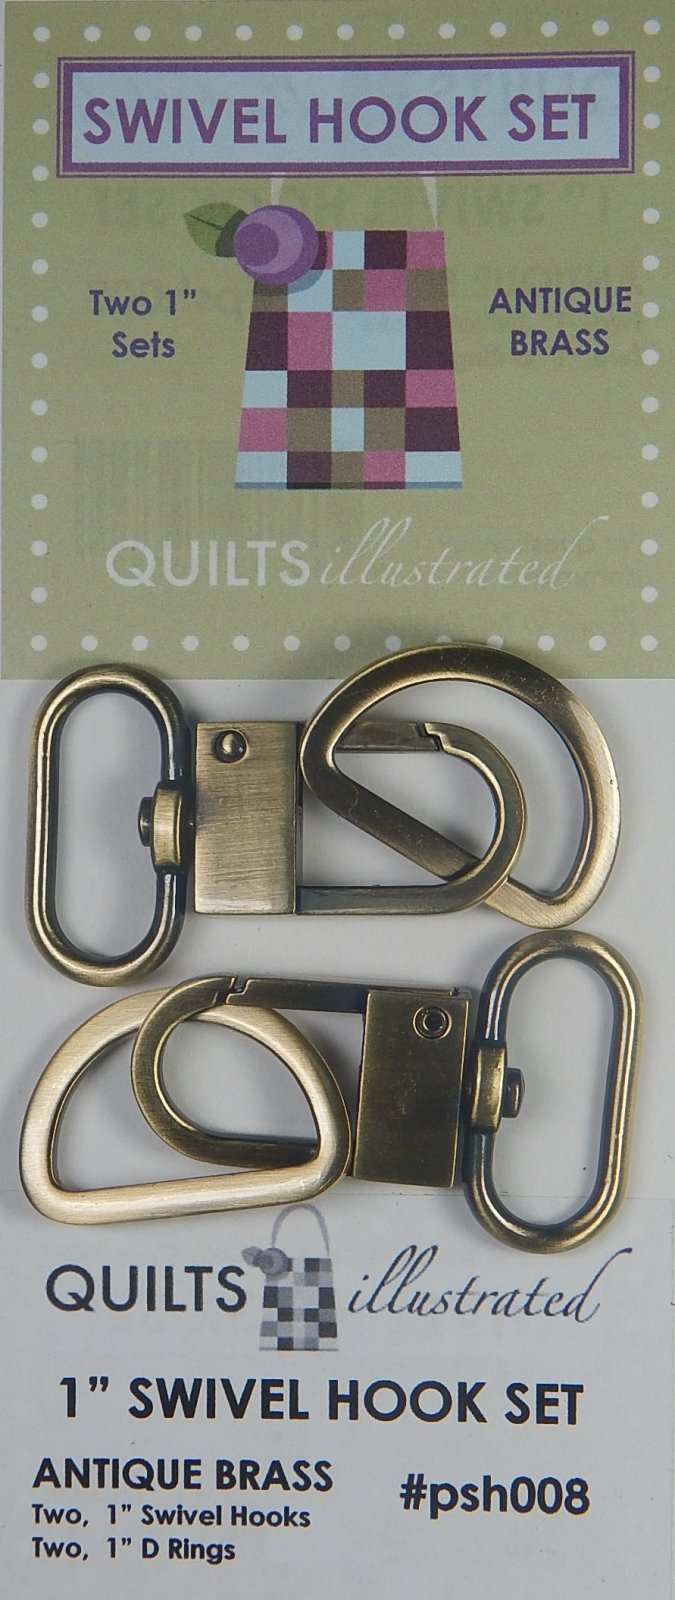 1 Swivel Hook Set - Antique Brass - psh008